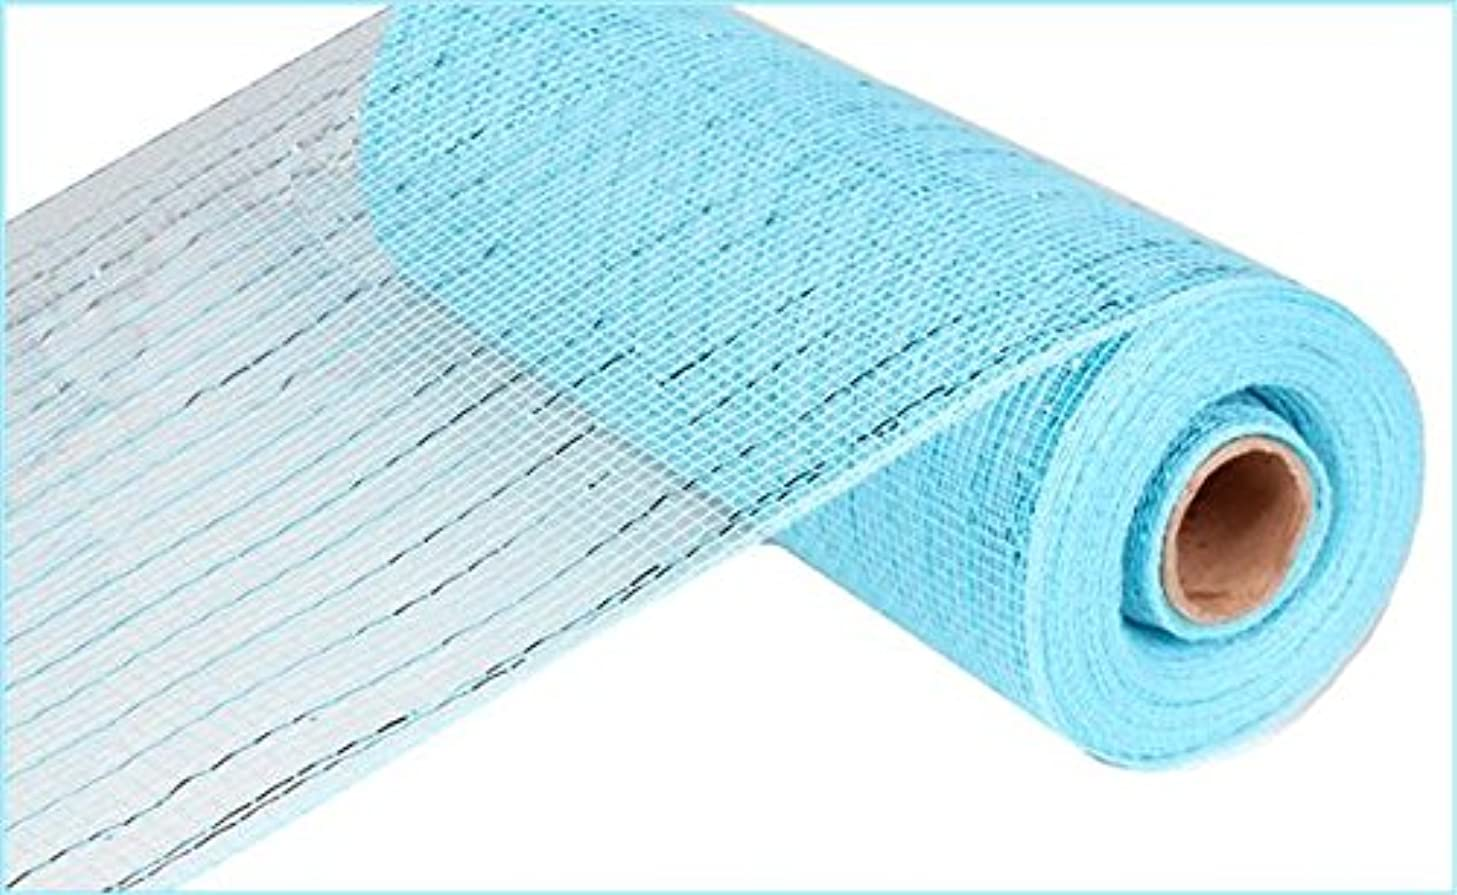 10 inch x 30 feet Deco Poly Mesh Ribbon - Value Mesh (Turquoise, Turquoise Foil)